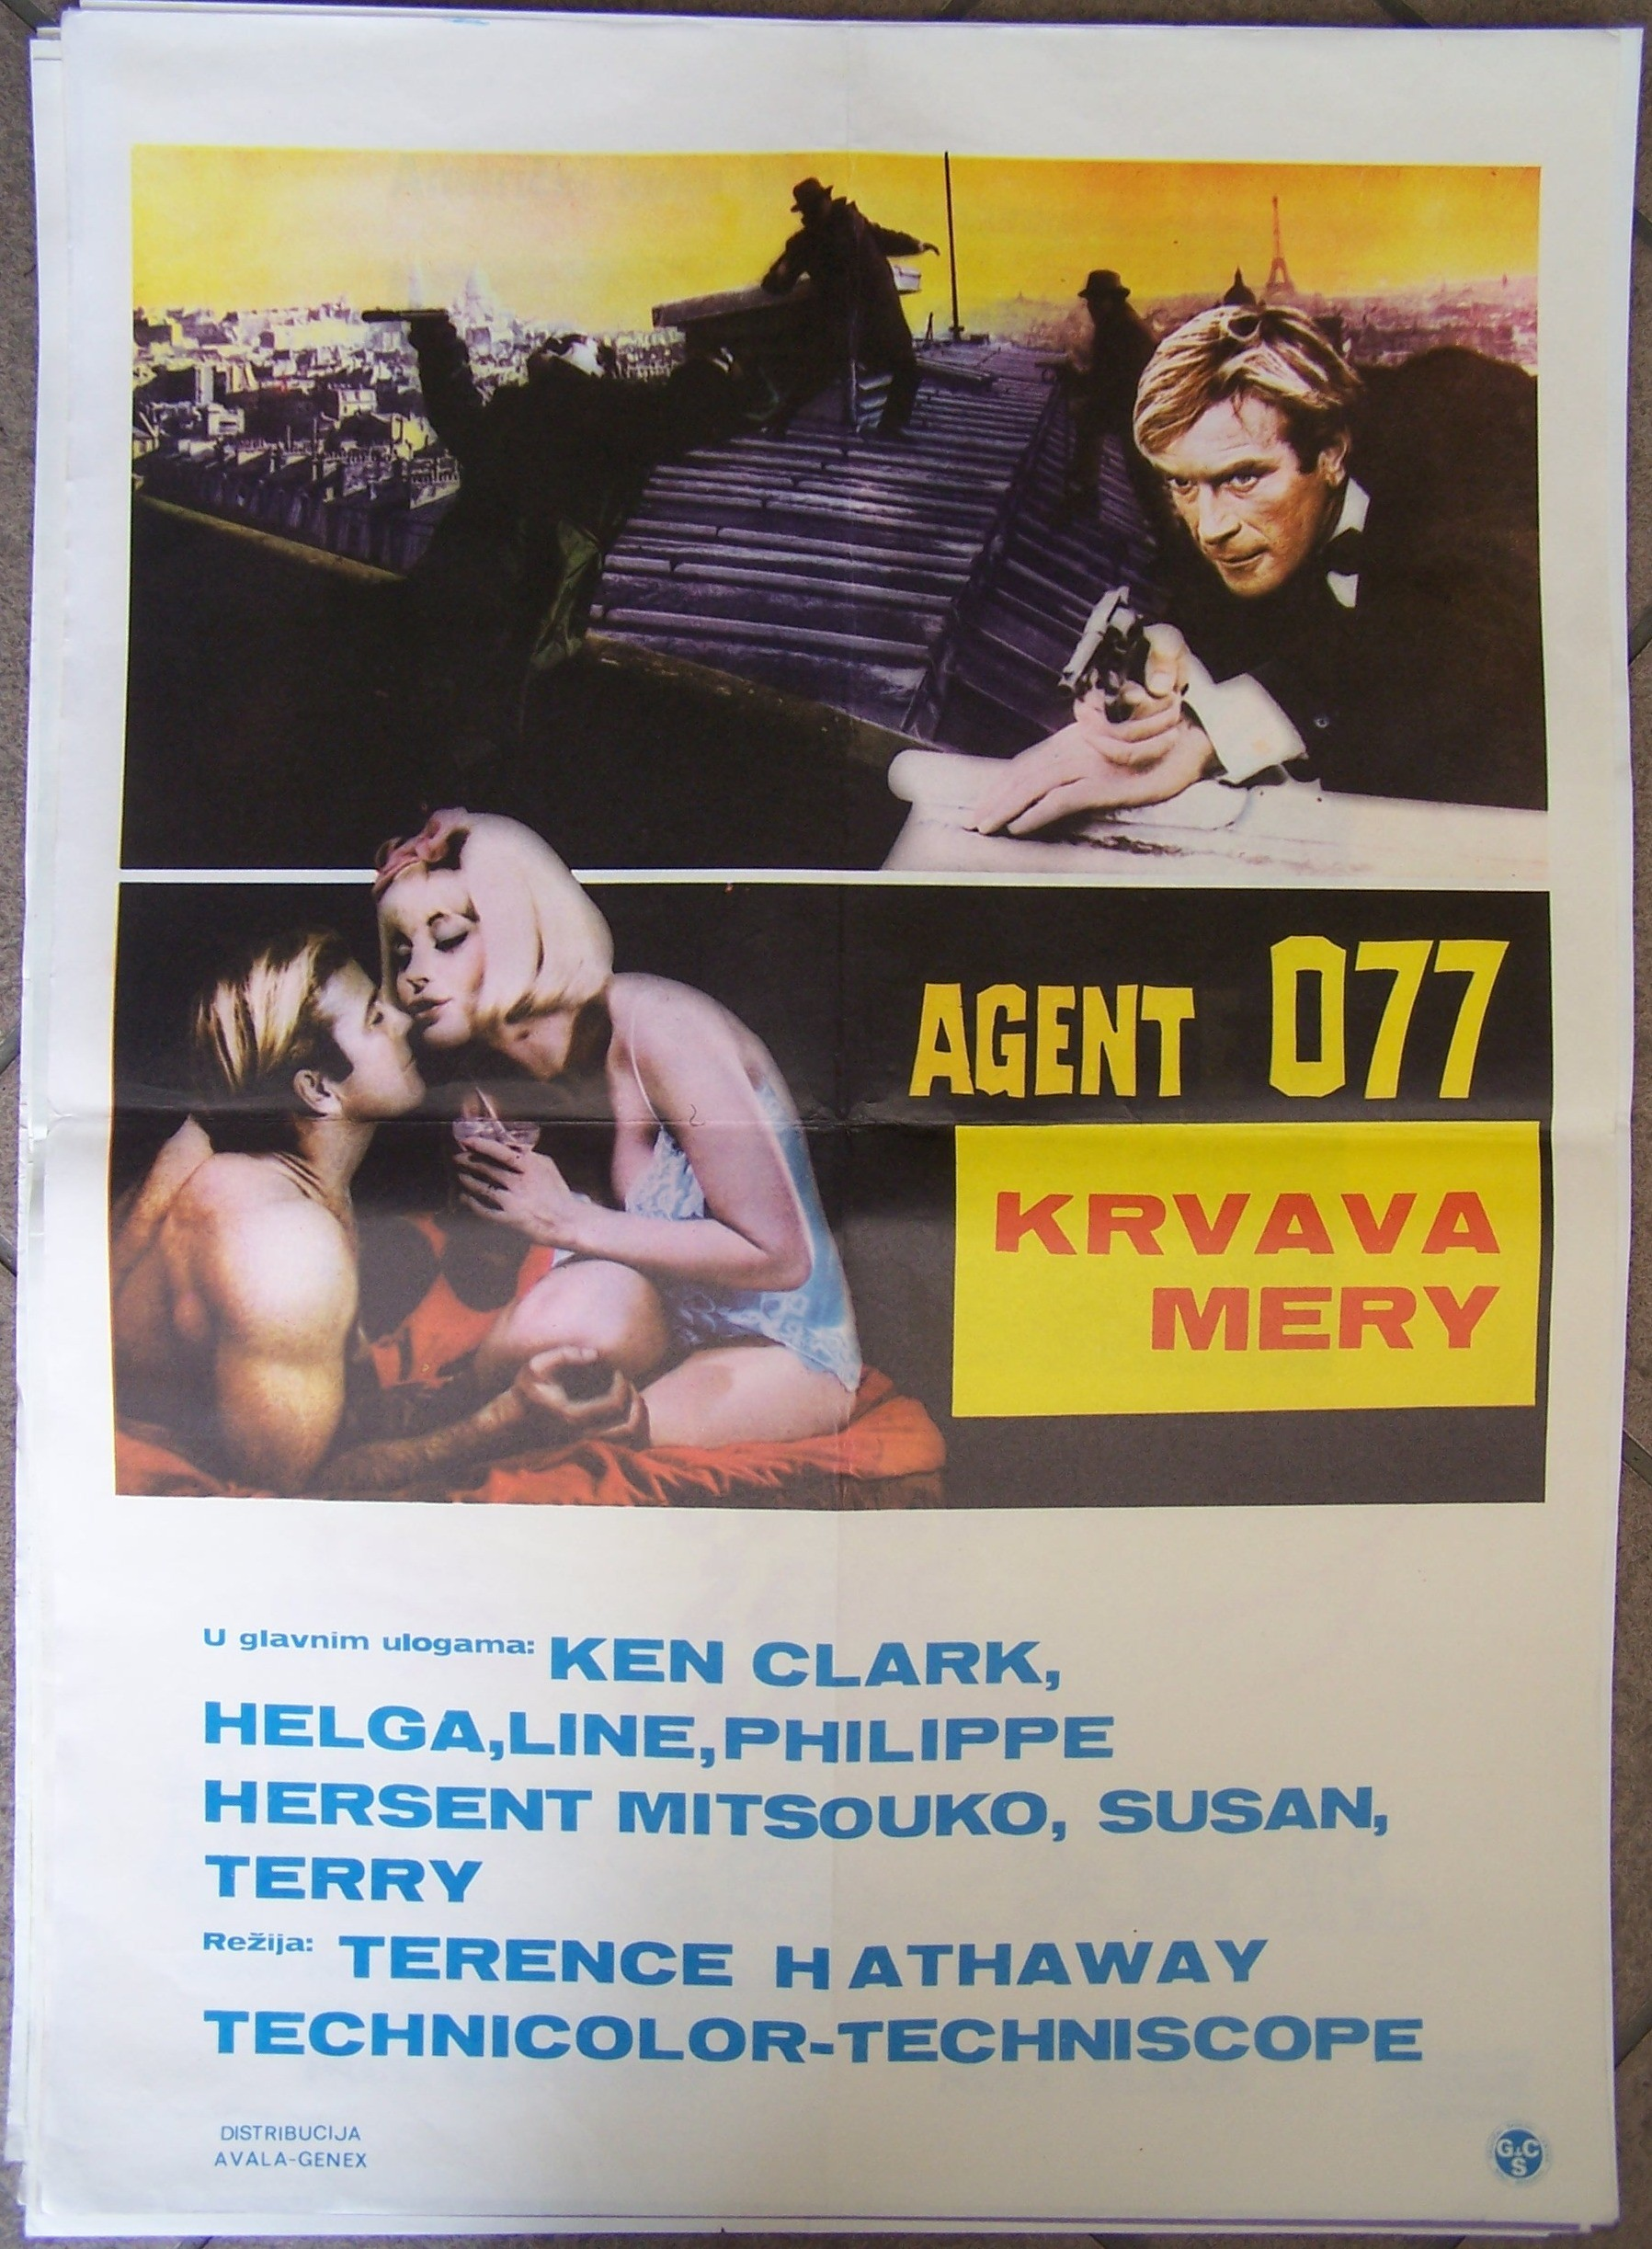 Agent 077 Krvava Mery